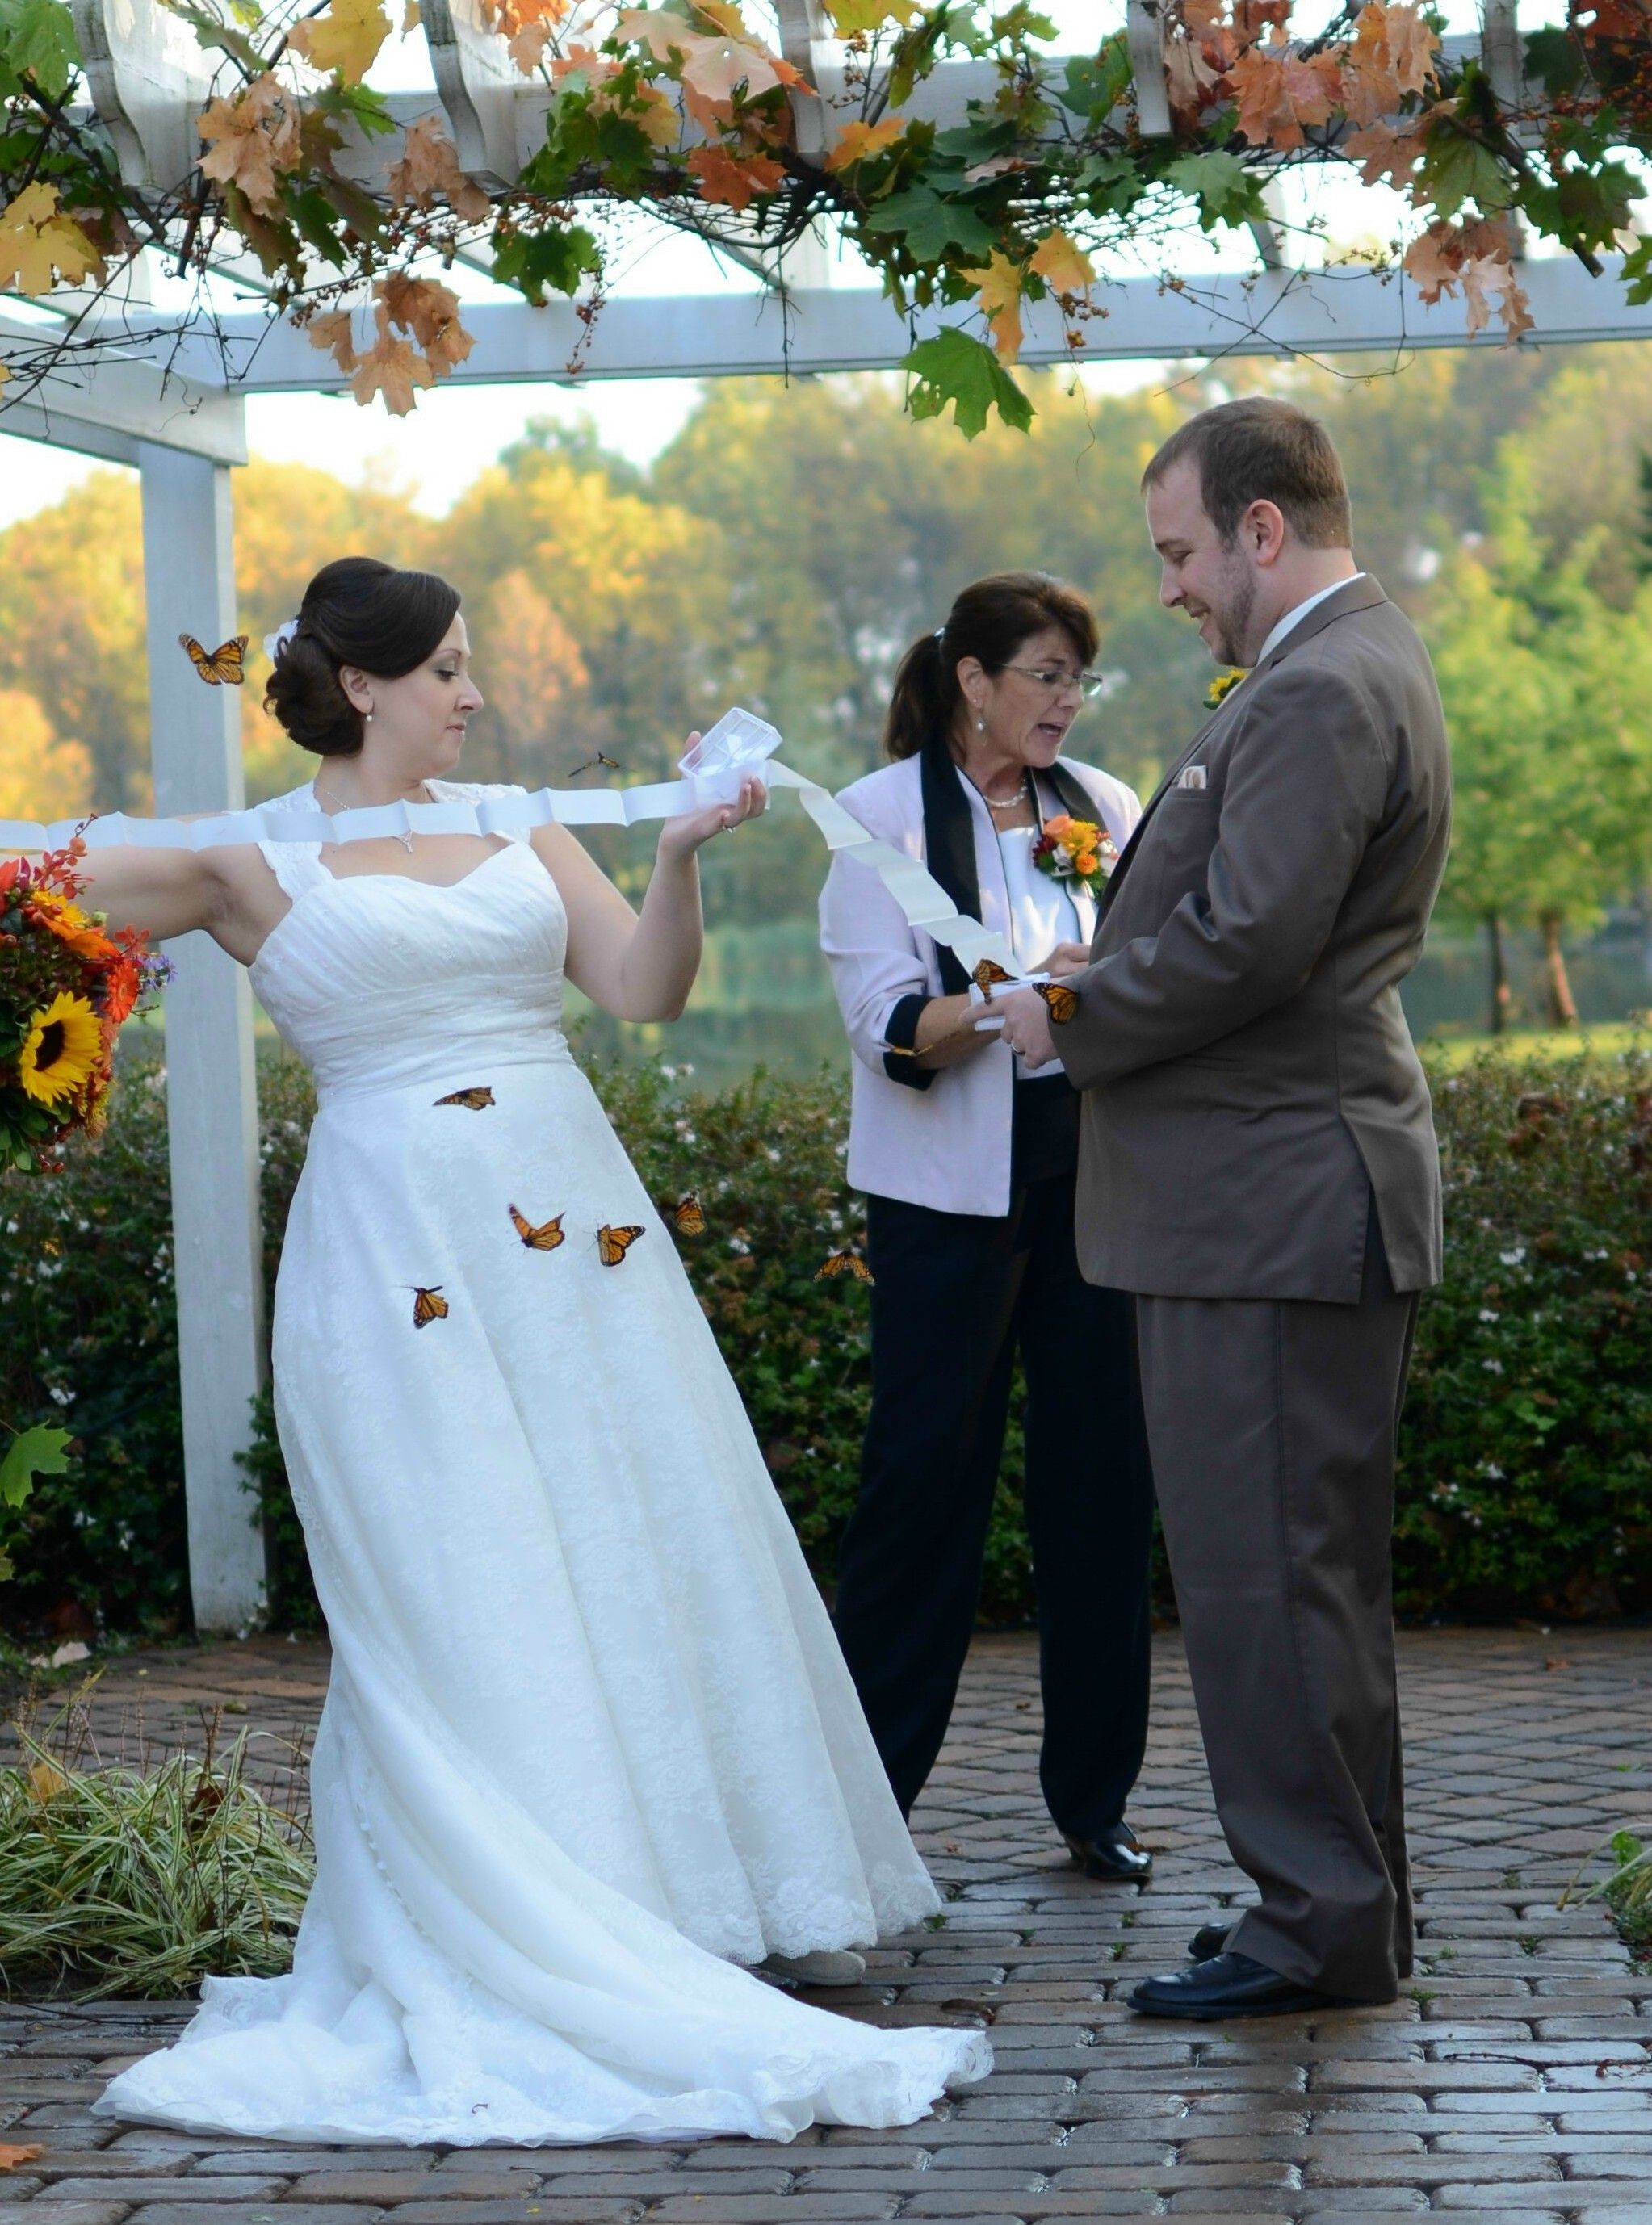 Release Live Erflies For Your Special Wedding Erflyreleasesbys